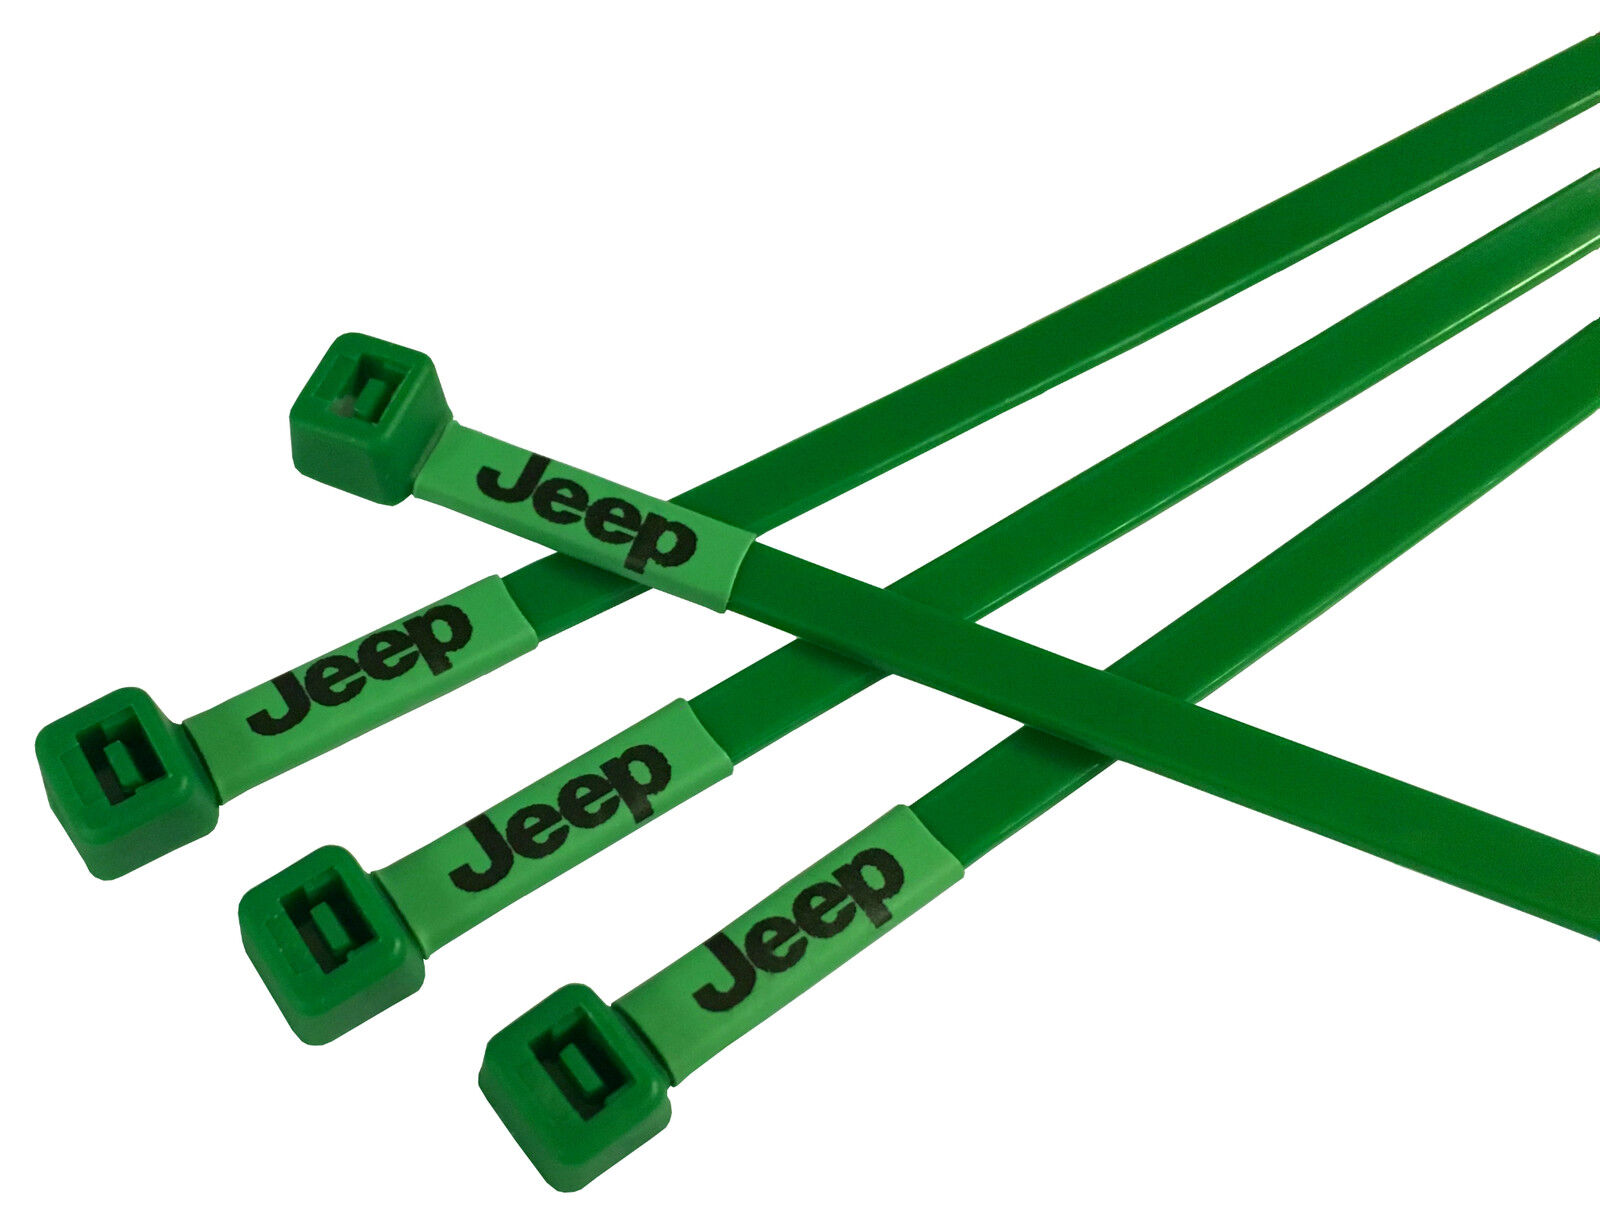 Jeep Logo Printed Cable Ties in Green Vehicle Modification Repair - 40pc pack